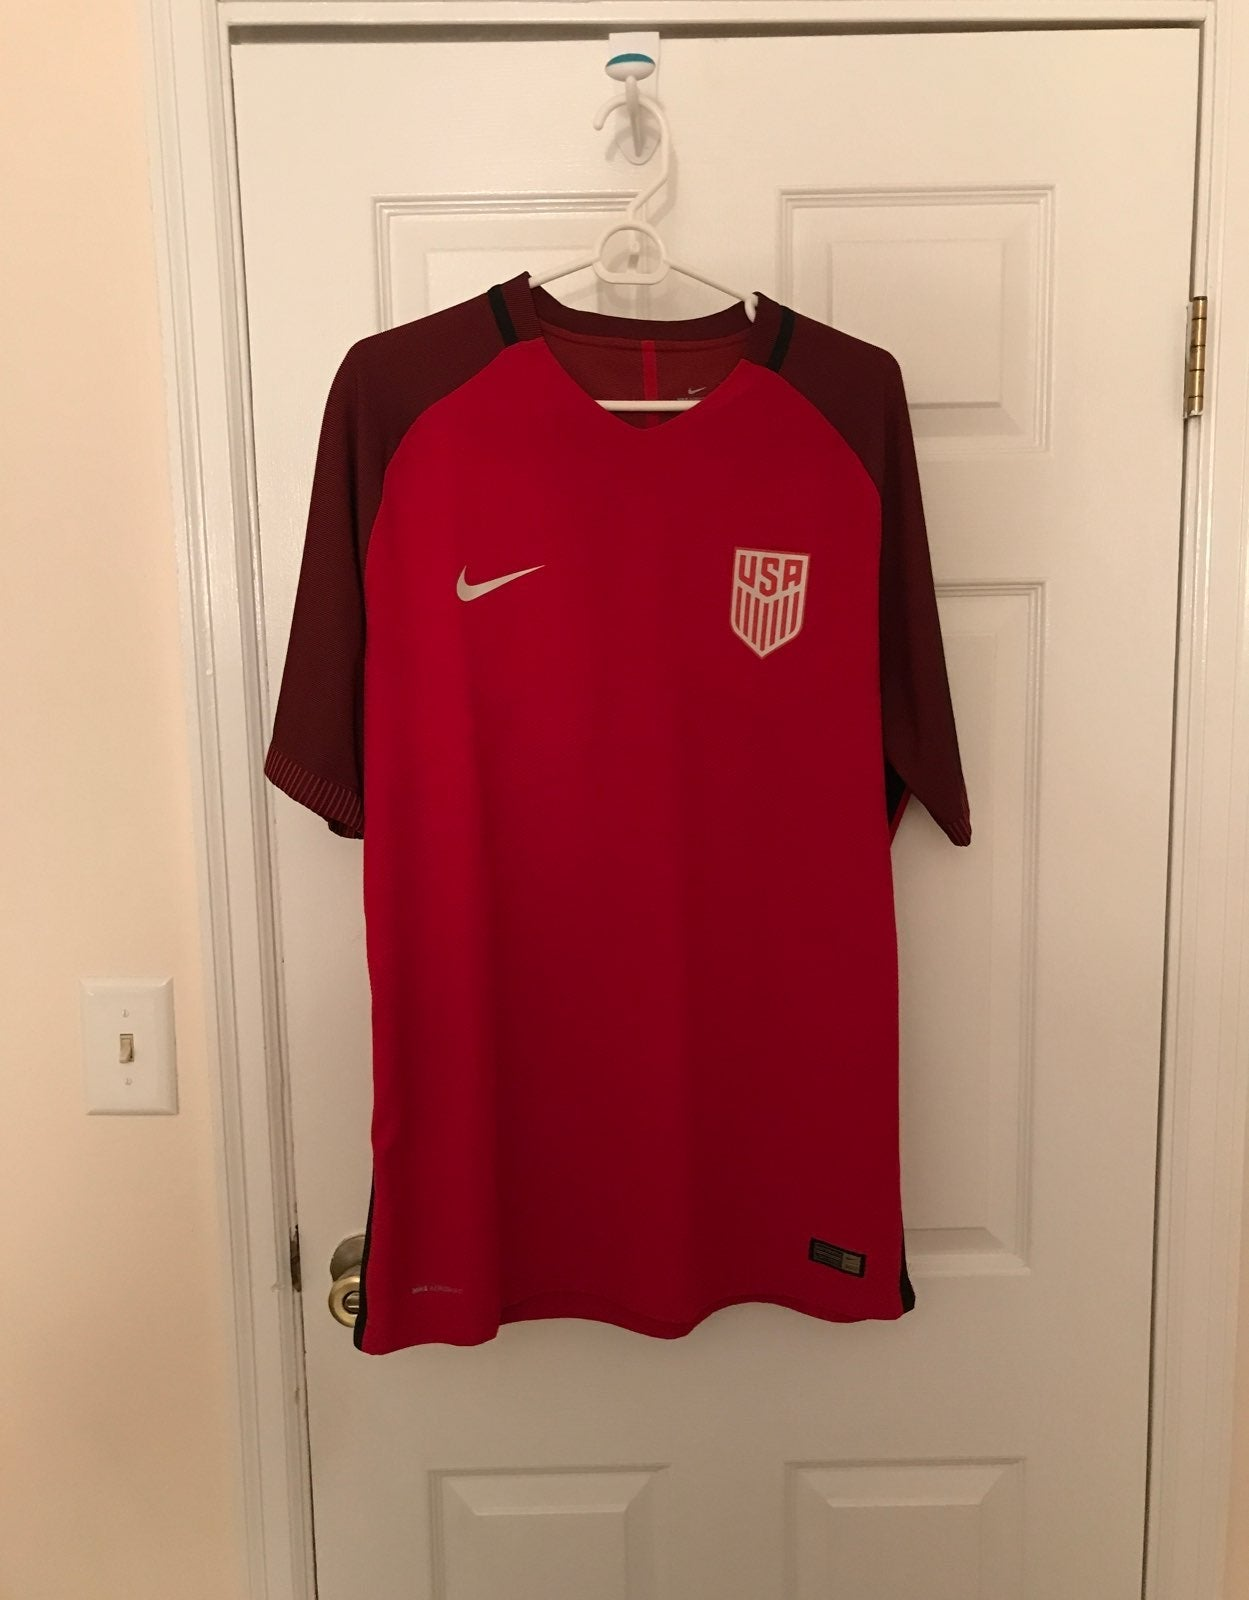 AUTHENTIC USA Men's Soccer Home Jersey